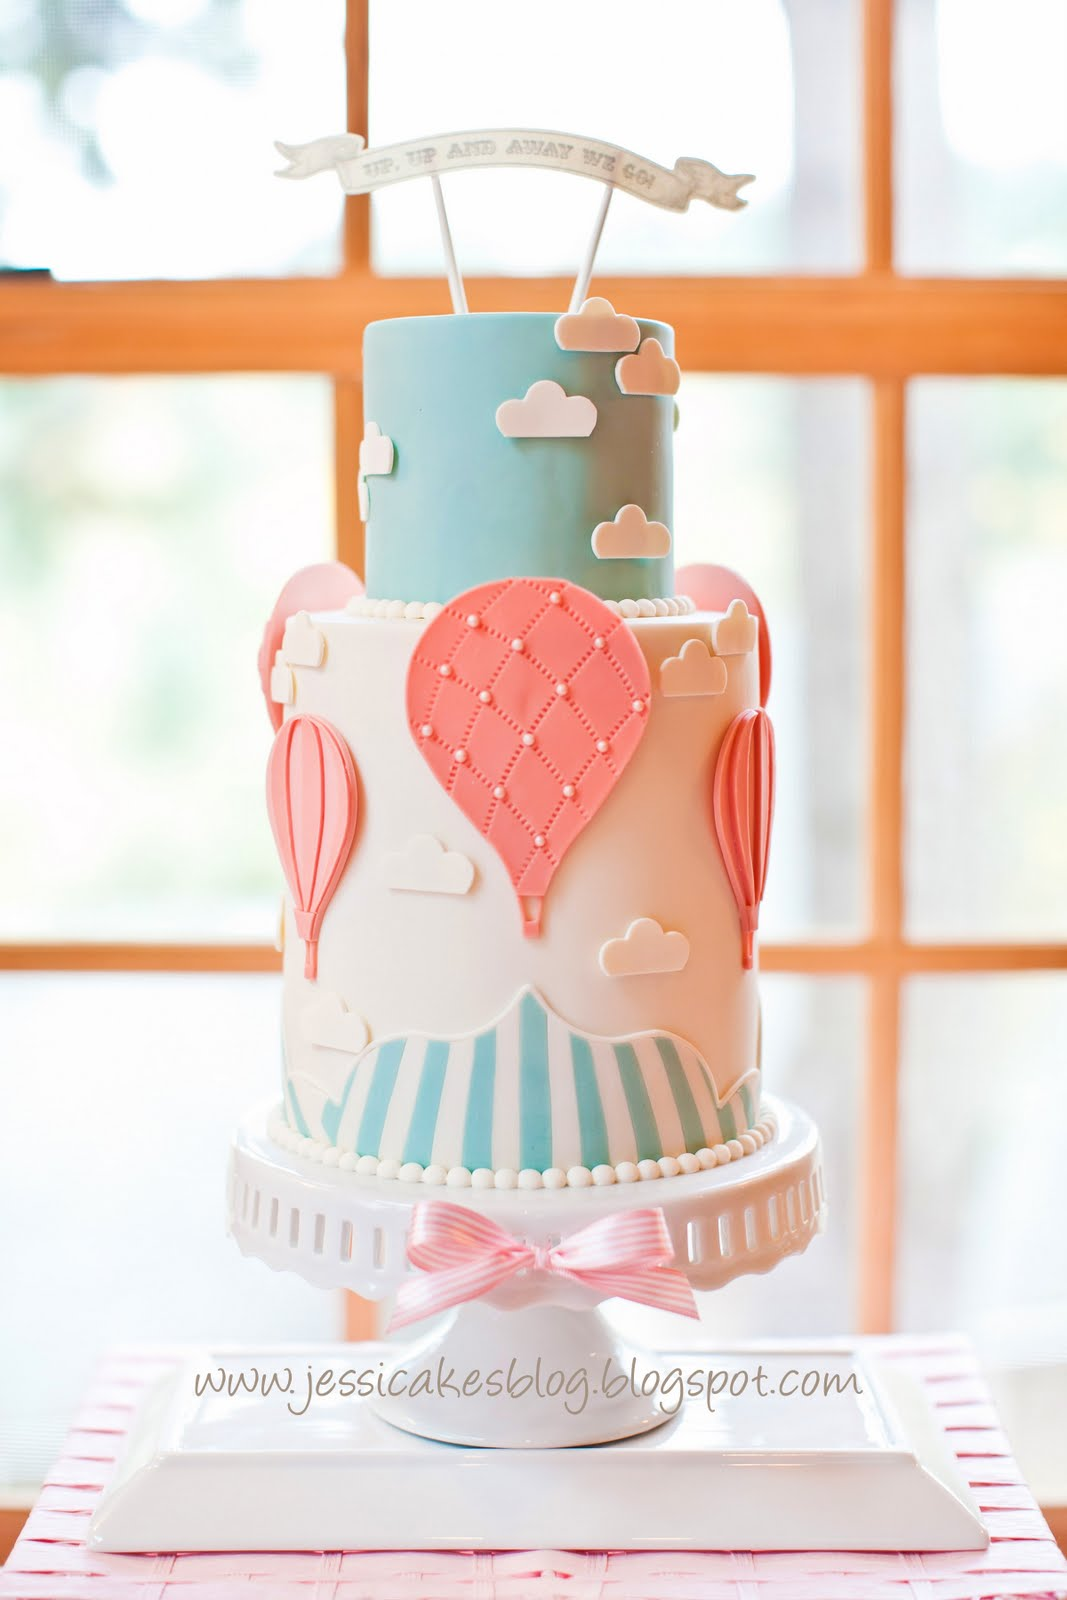 Cake Design Ballarat : Hot Air Balloon Cake - Up Up and Away! - Jessica Harris ...